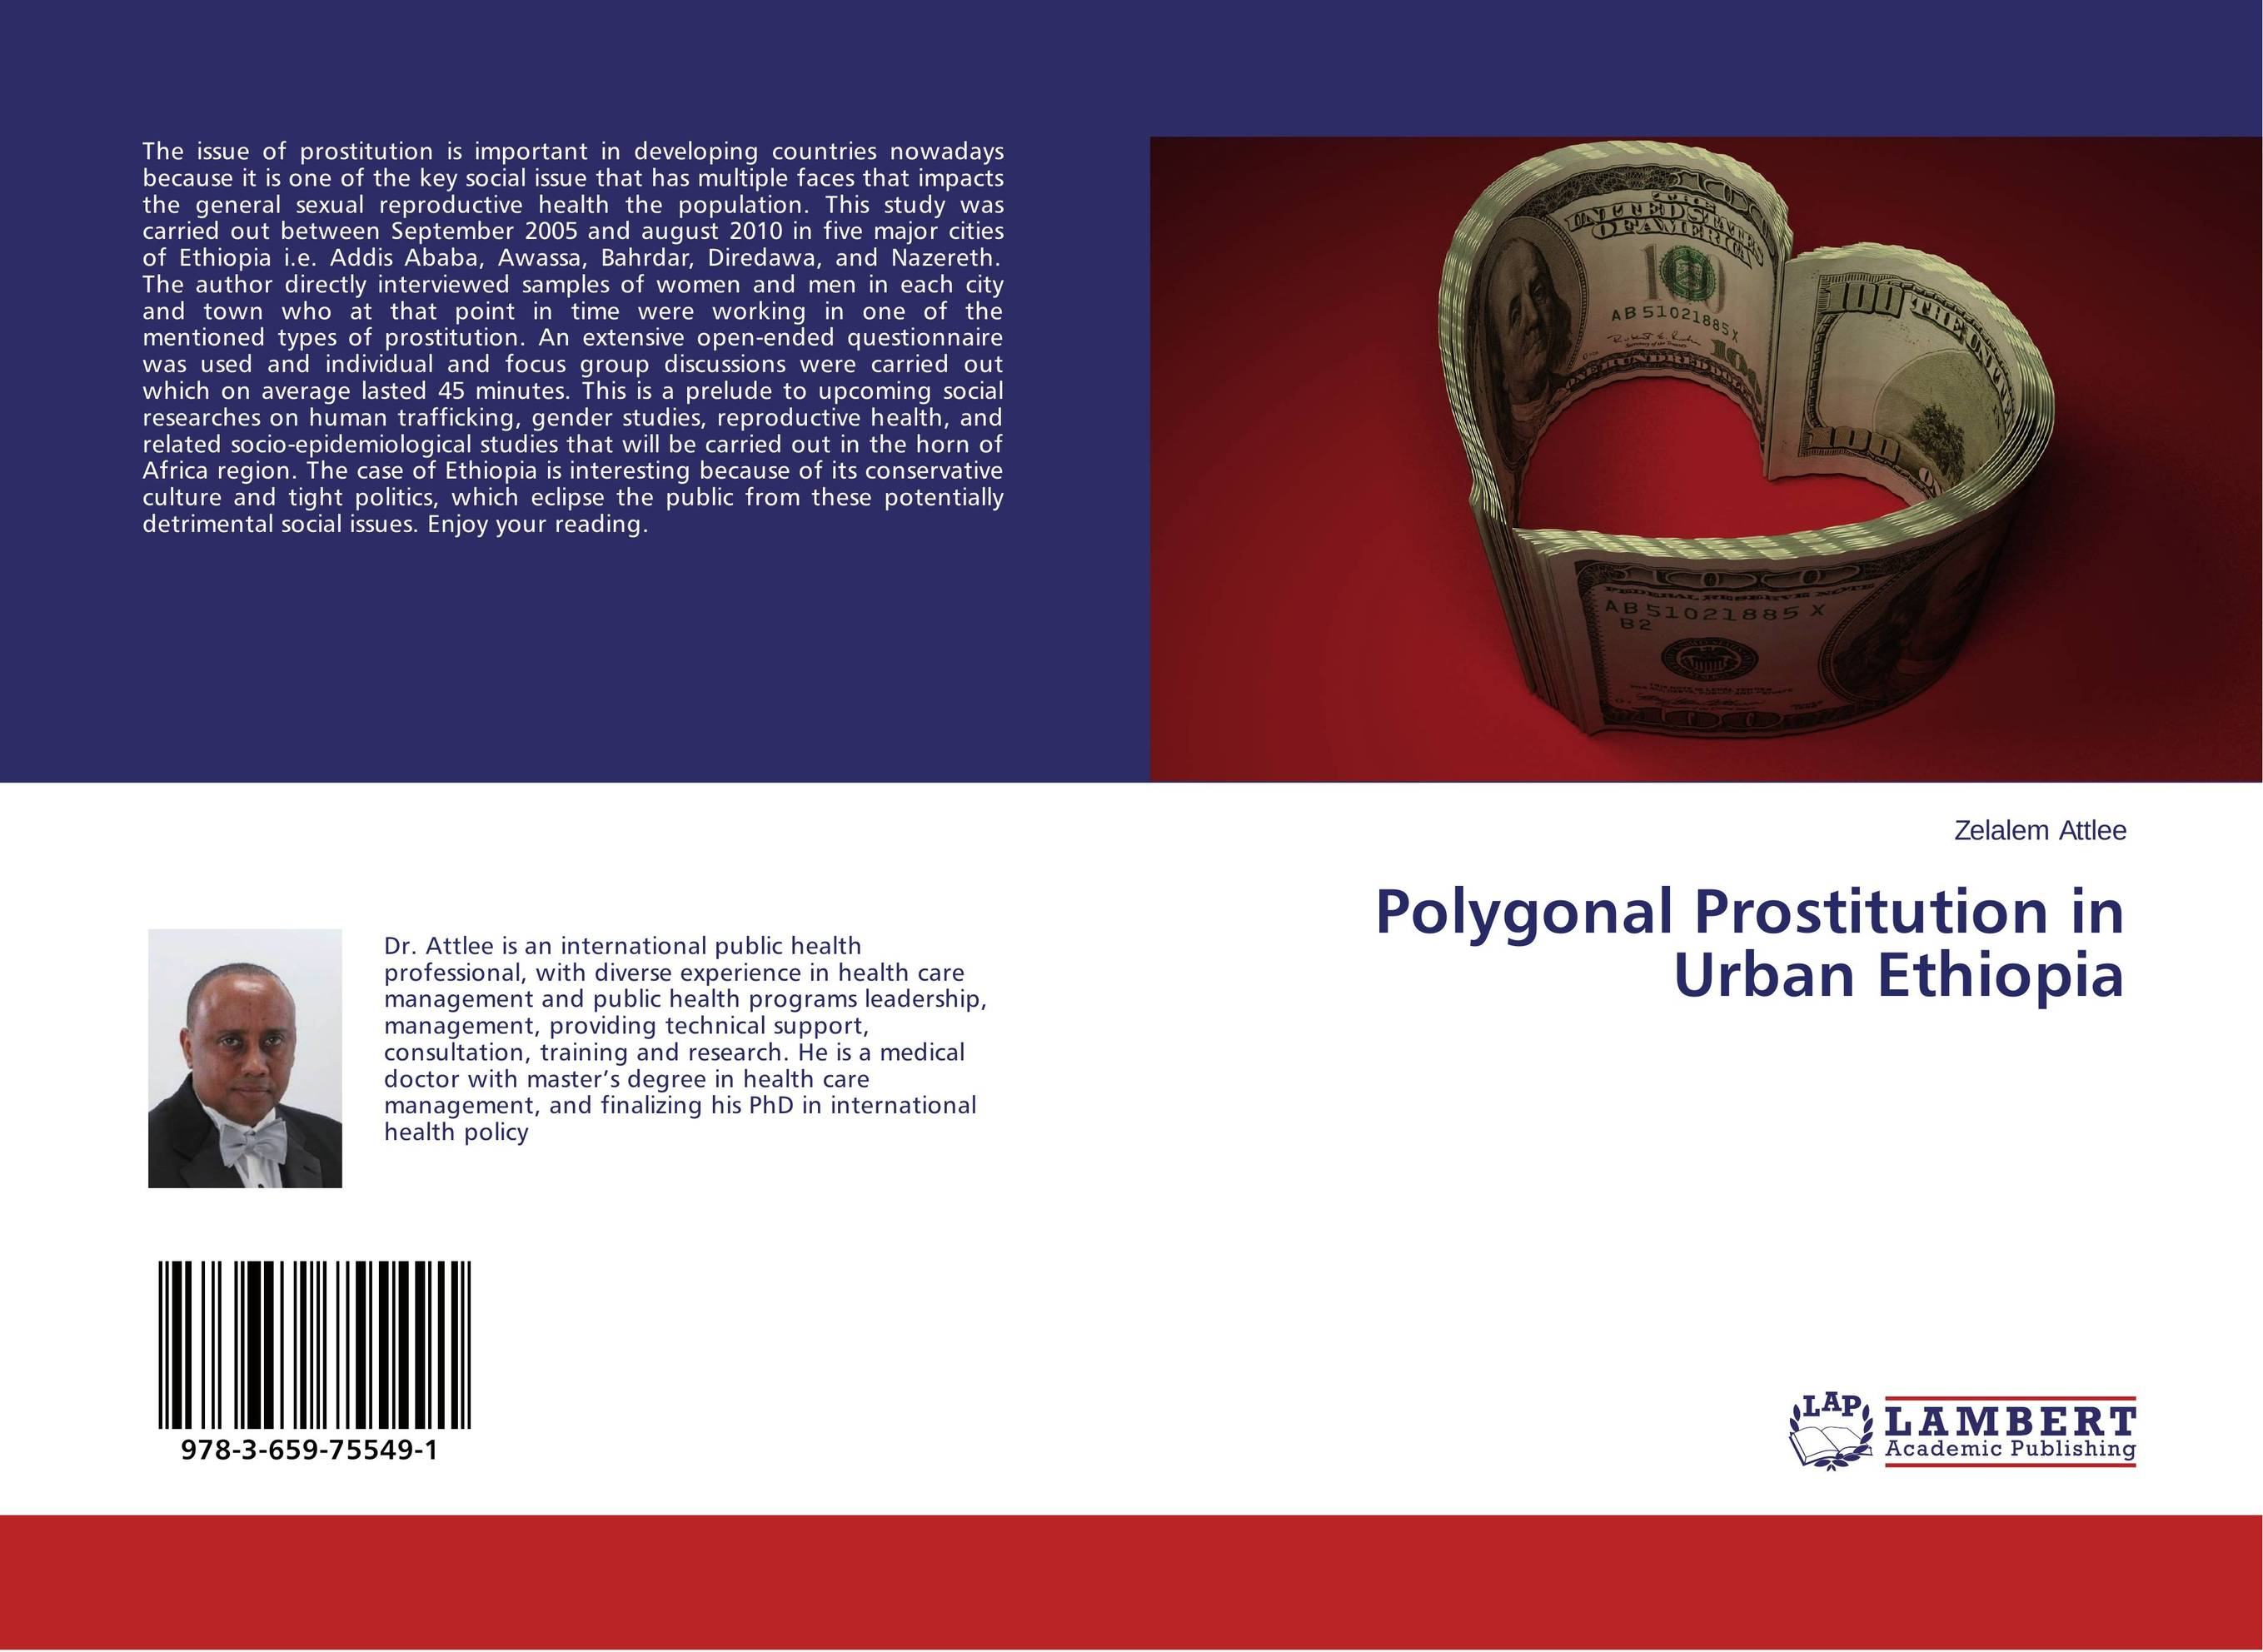 Polygonal Prostitution in Urban Ethiopia human trafficking a challenge in ethiopia